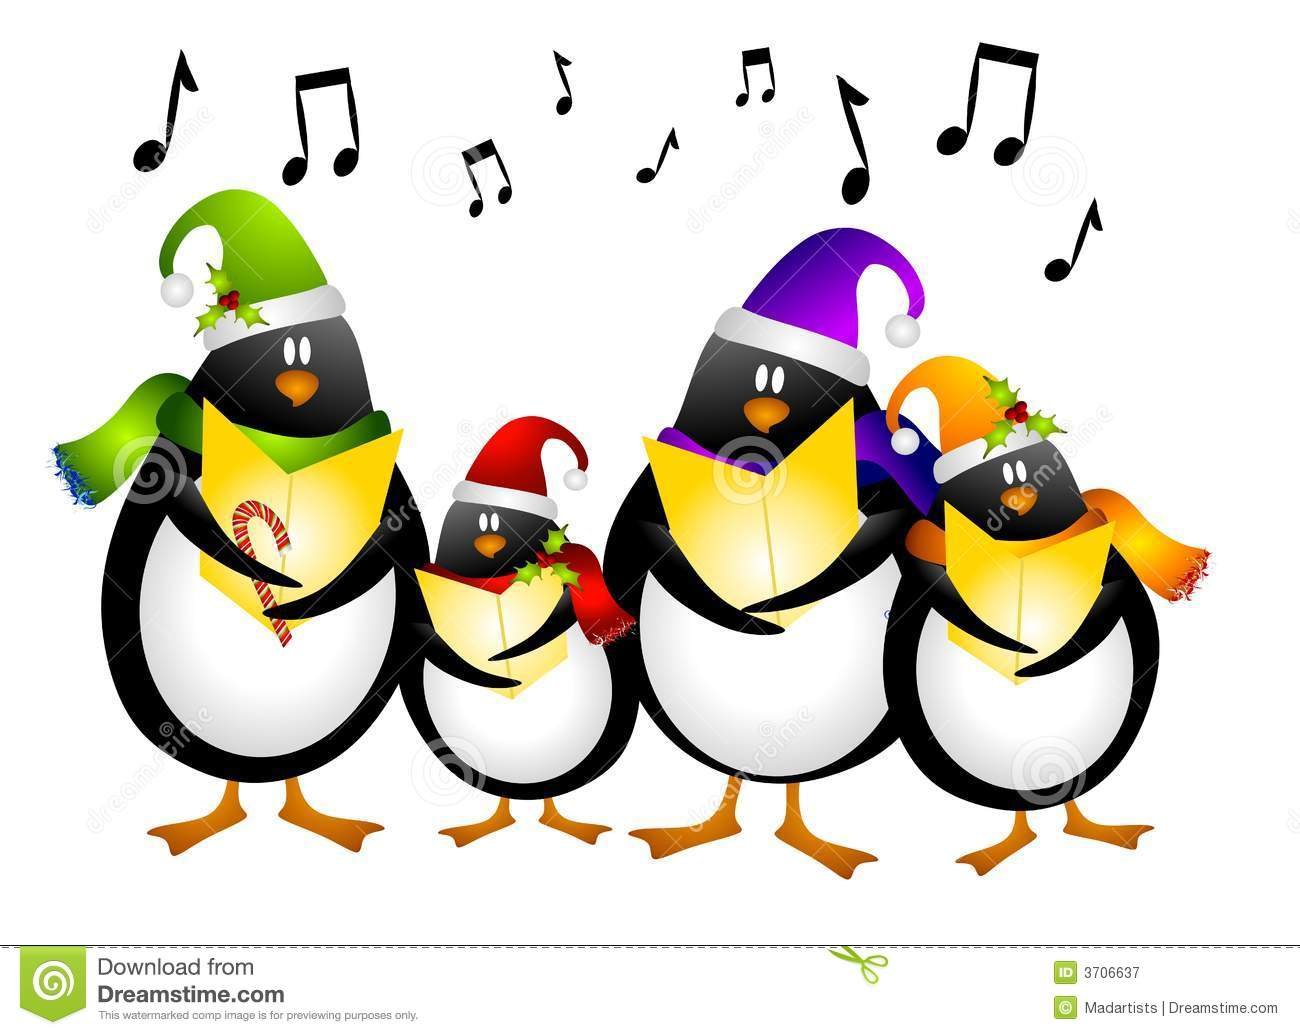 Art Illustration Of A Cartoonish Group Of Singing Penguin Christmas